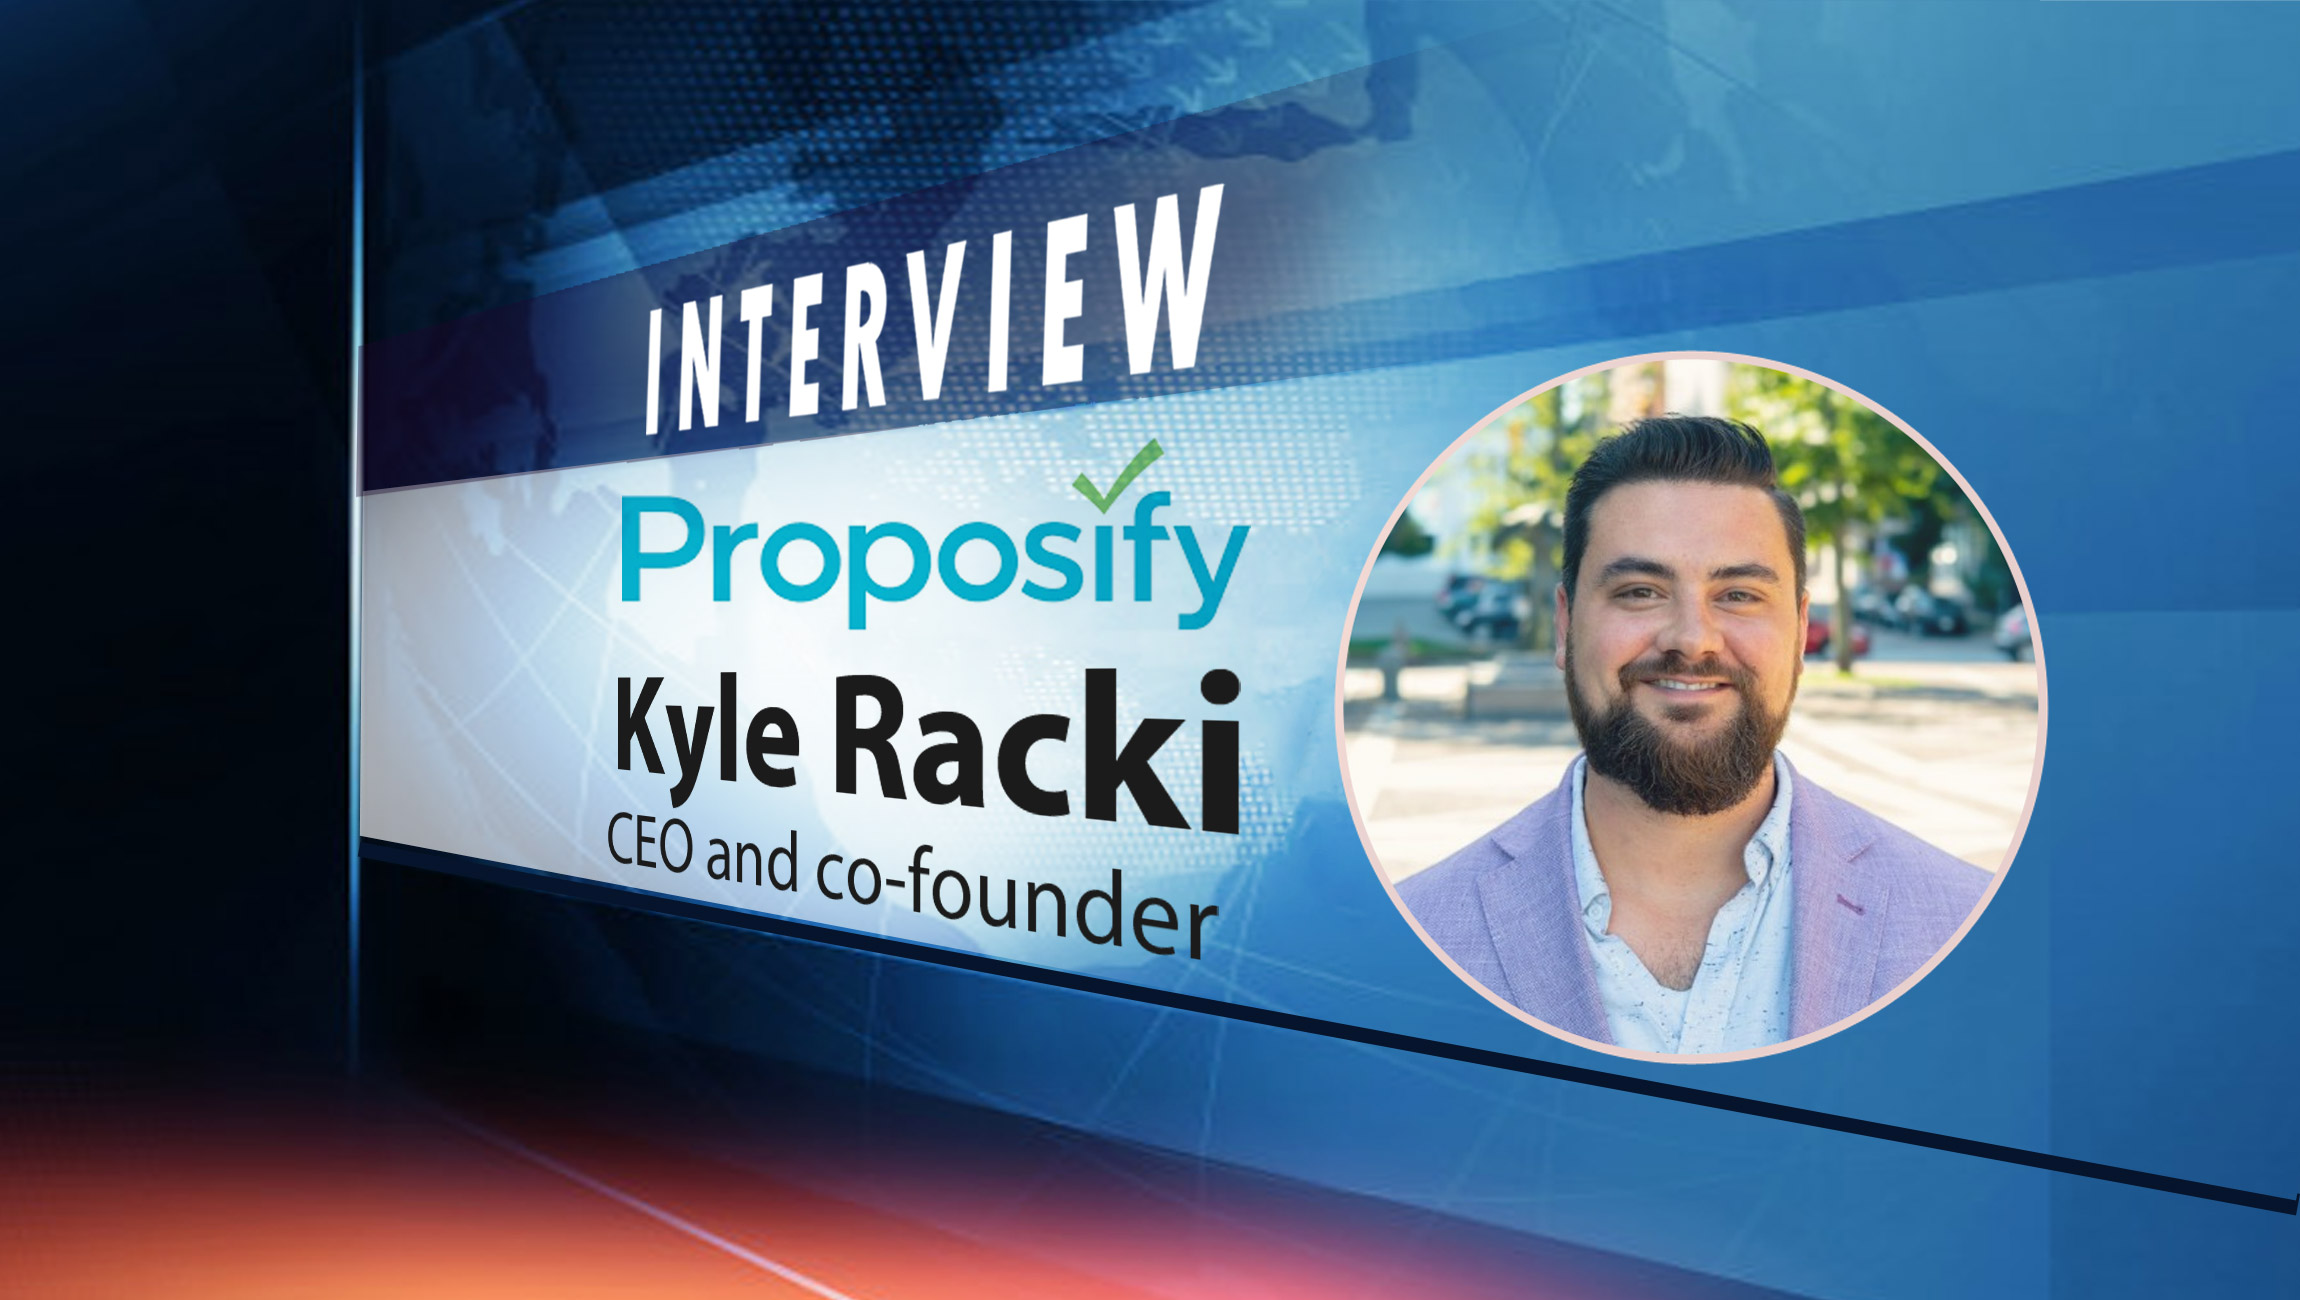 SalesTechStar Interview with Kyle Racki, Co-founder and CEO at Proposify